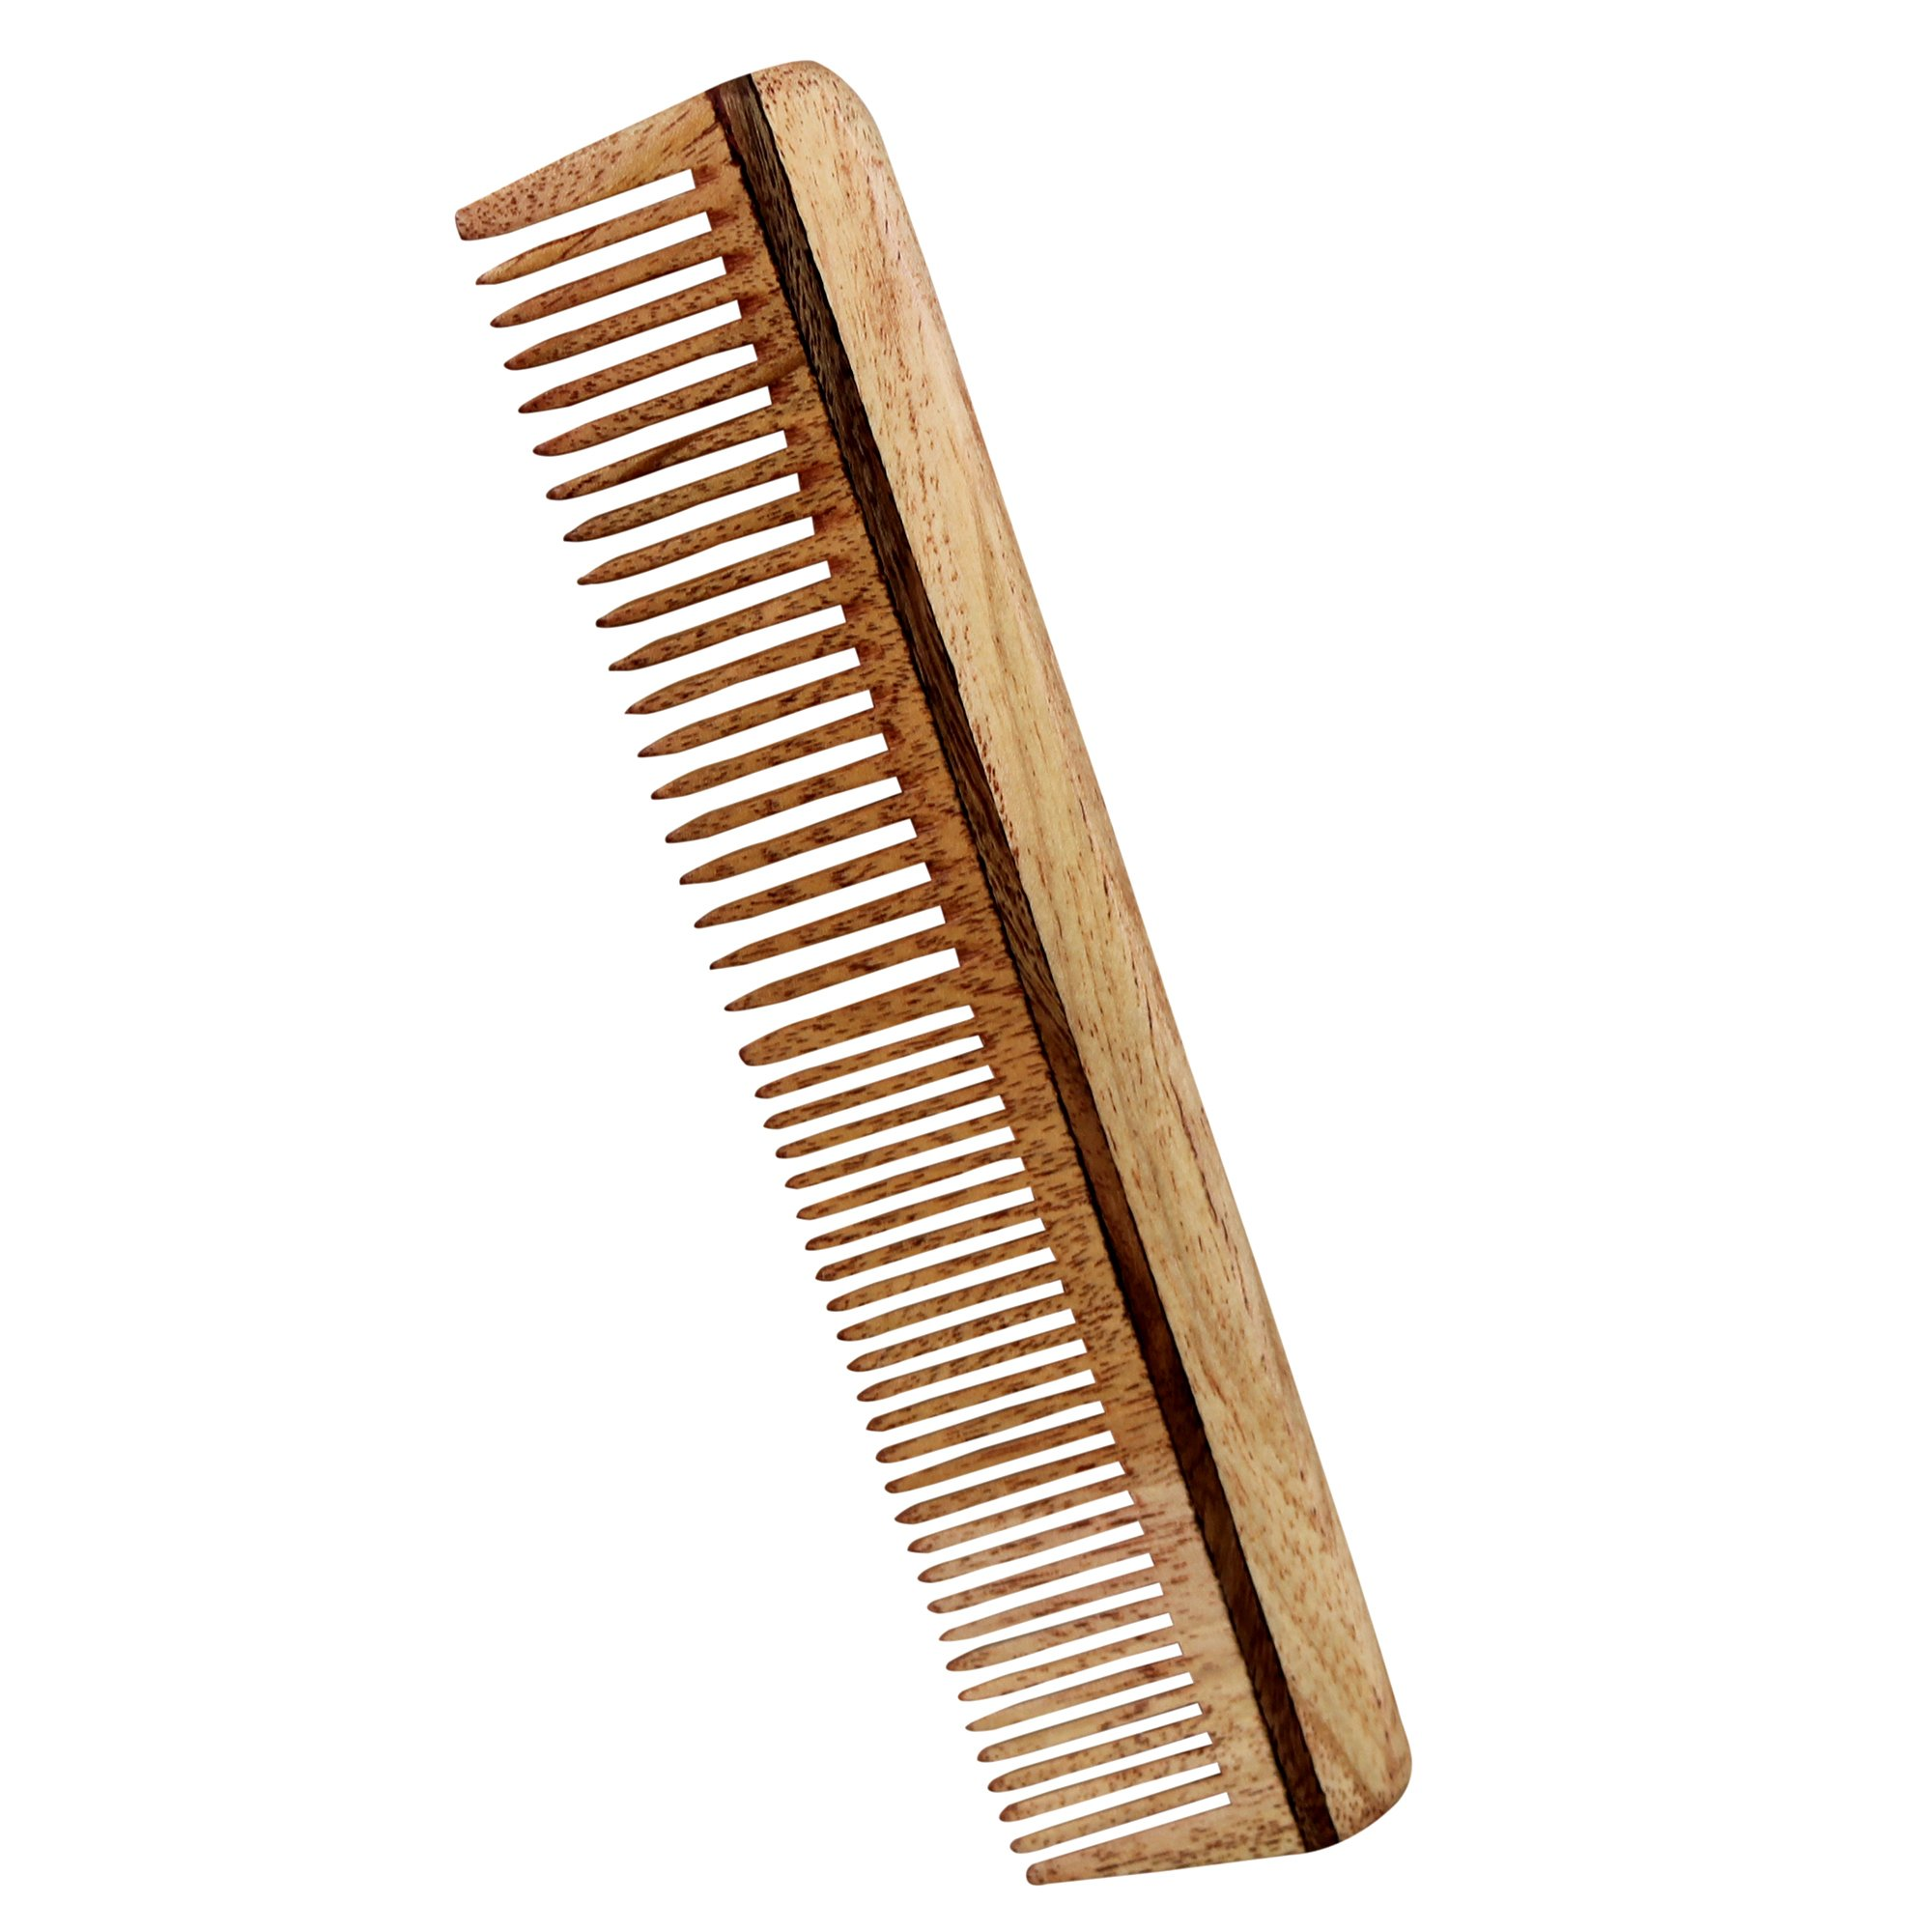 Wooden Hair Comb Neem Wide Tooth with Handle - Anti Dandruff, Non-Static